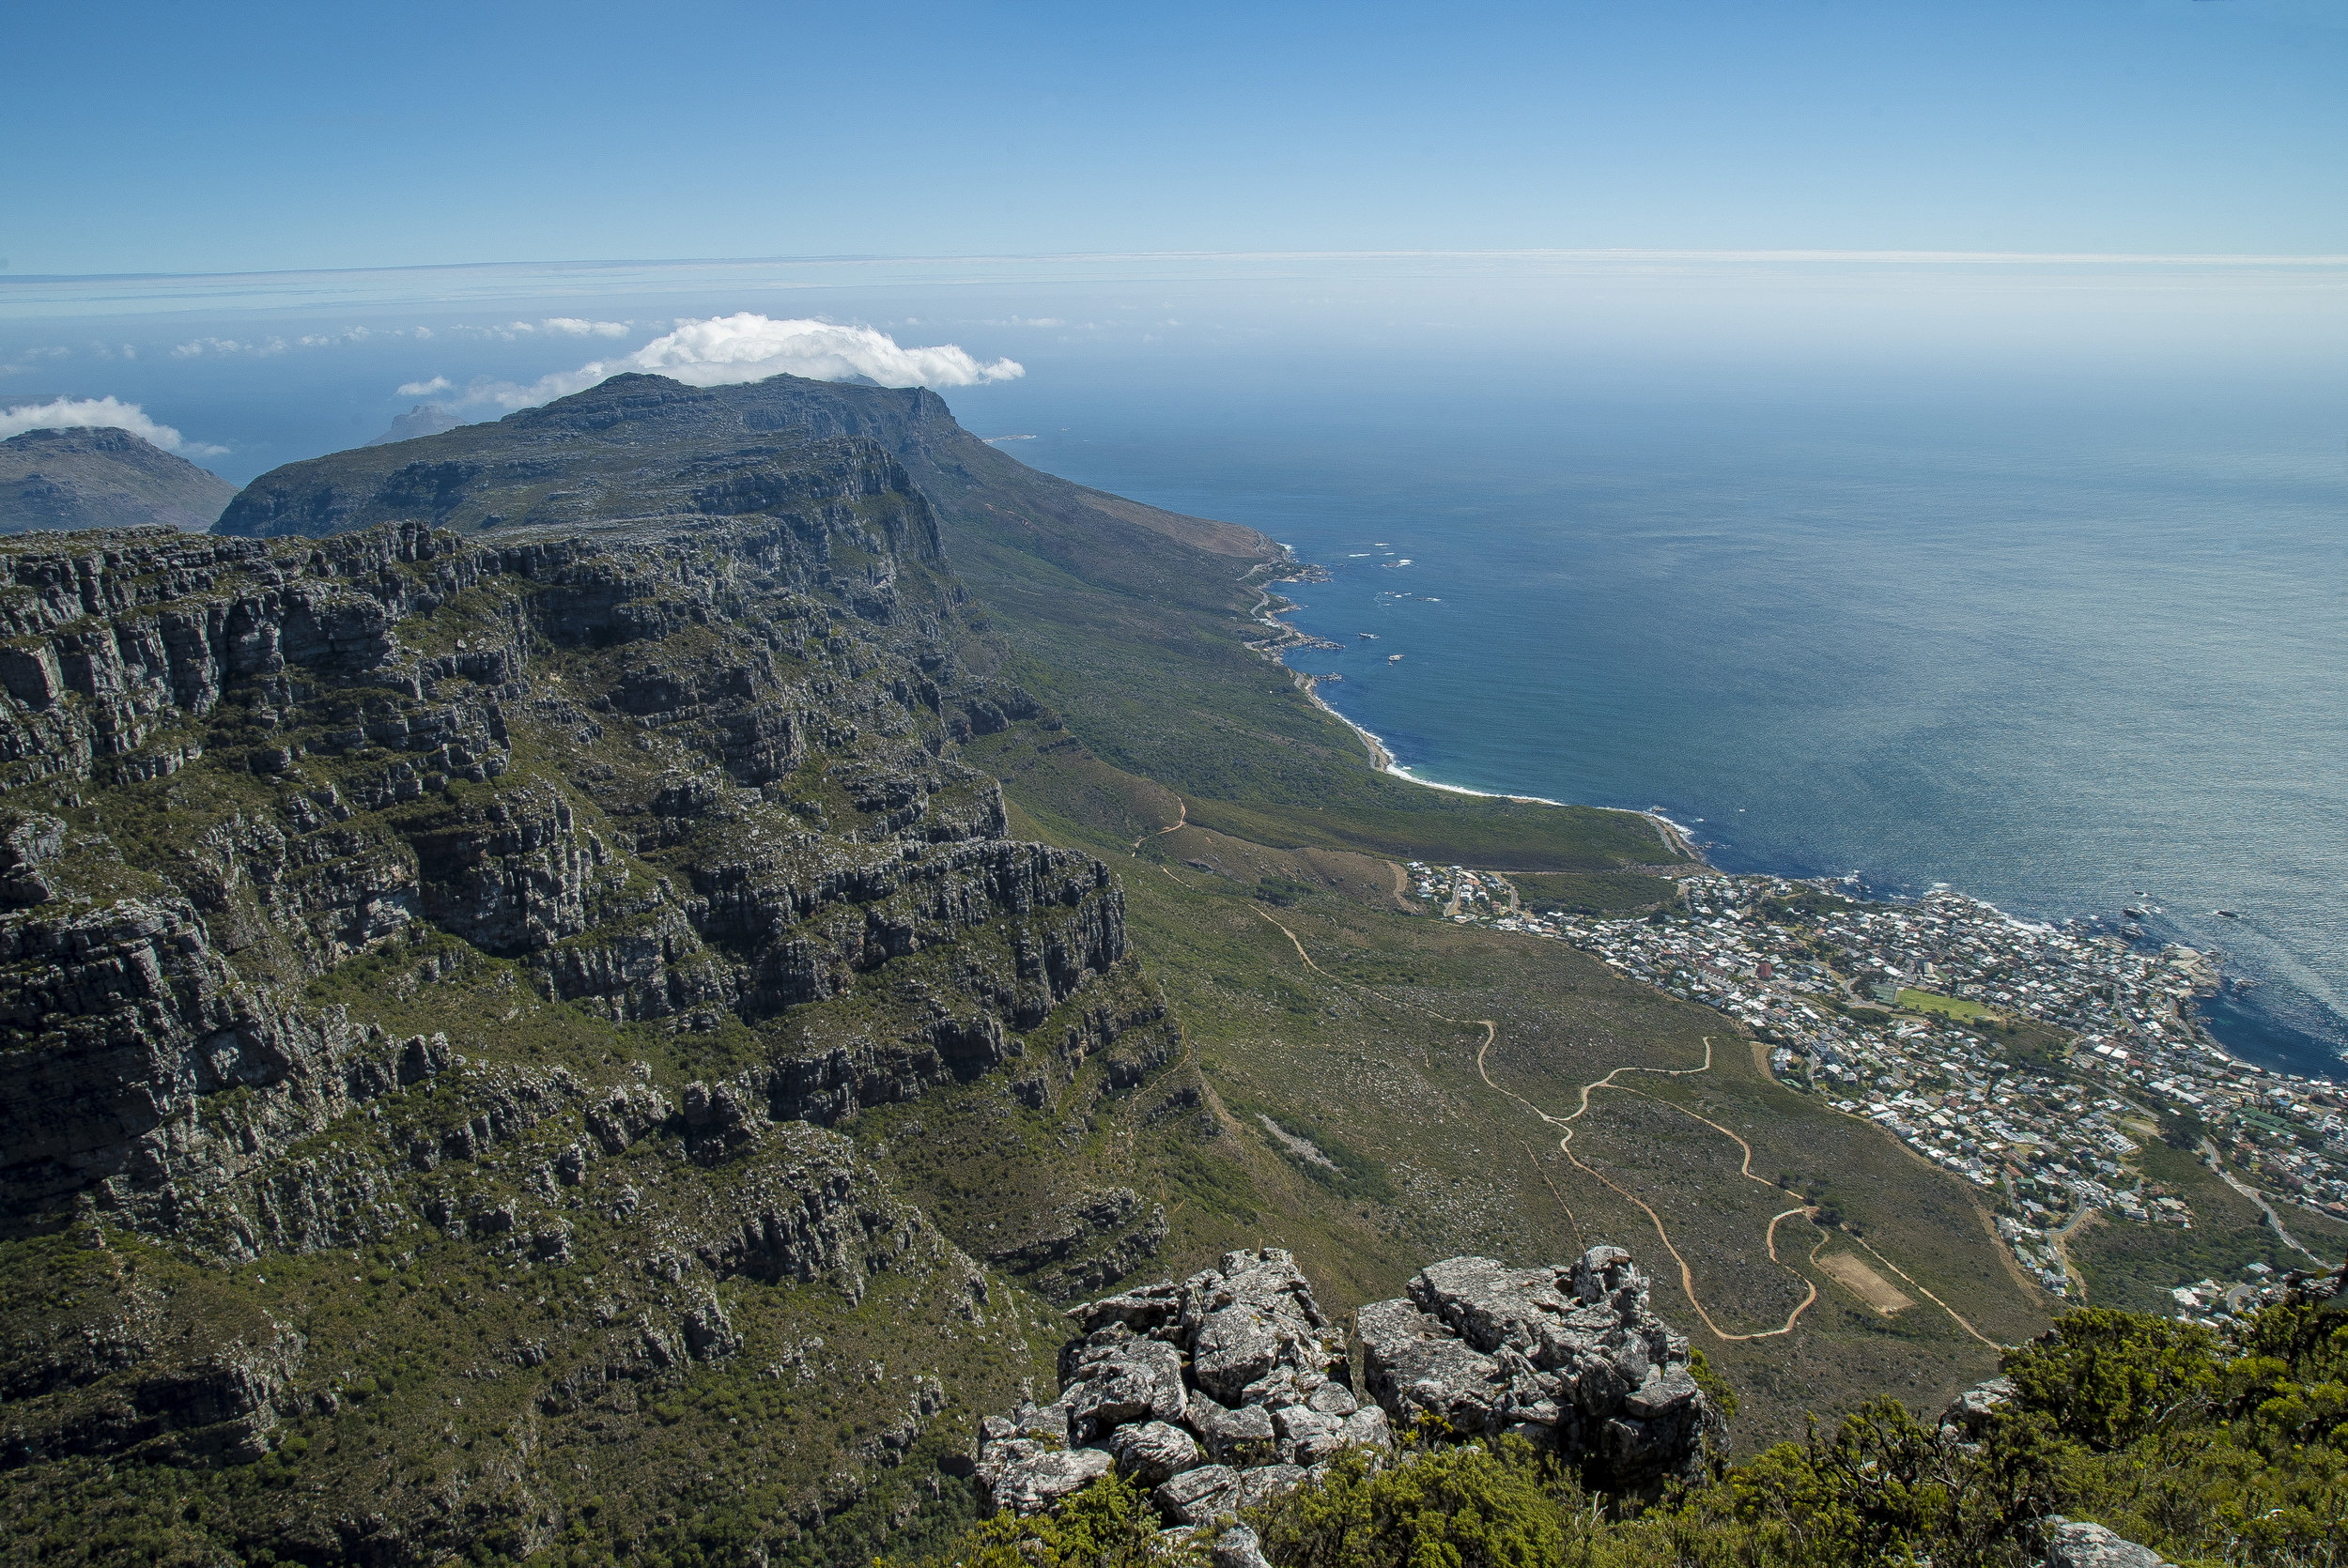 Cape Town Shot From Above